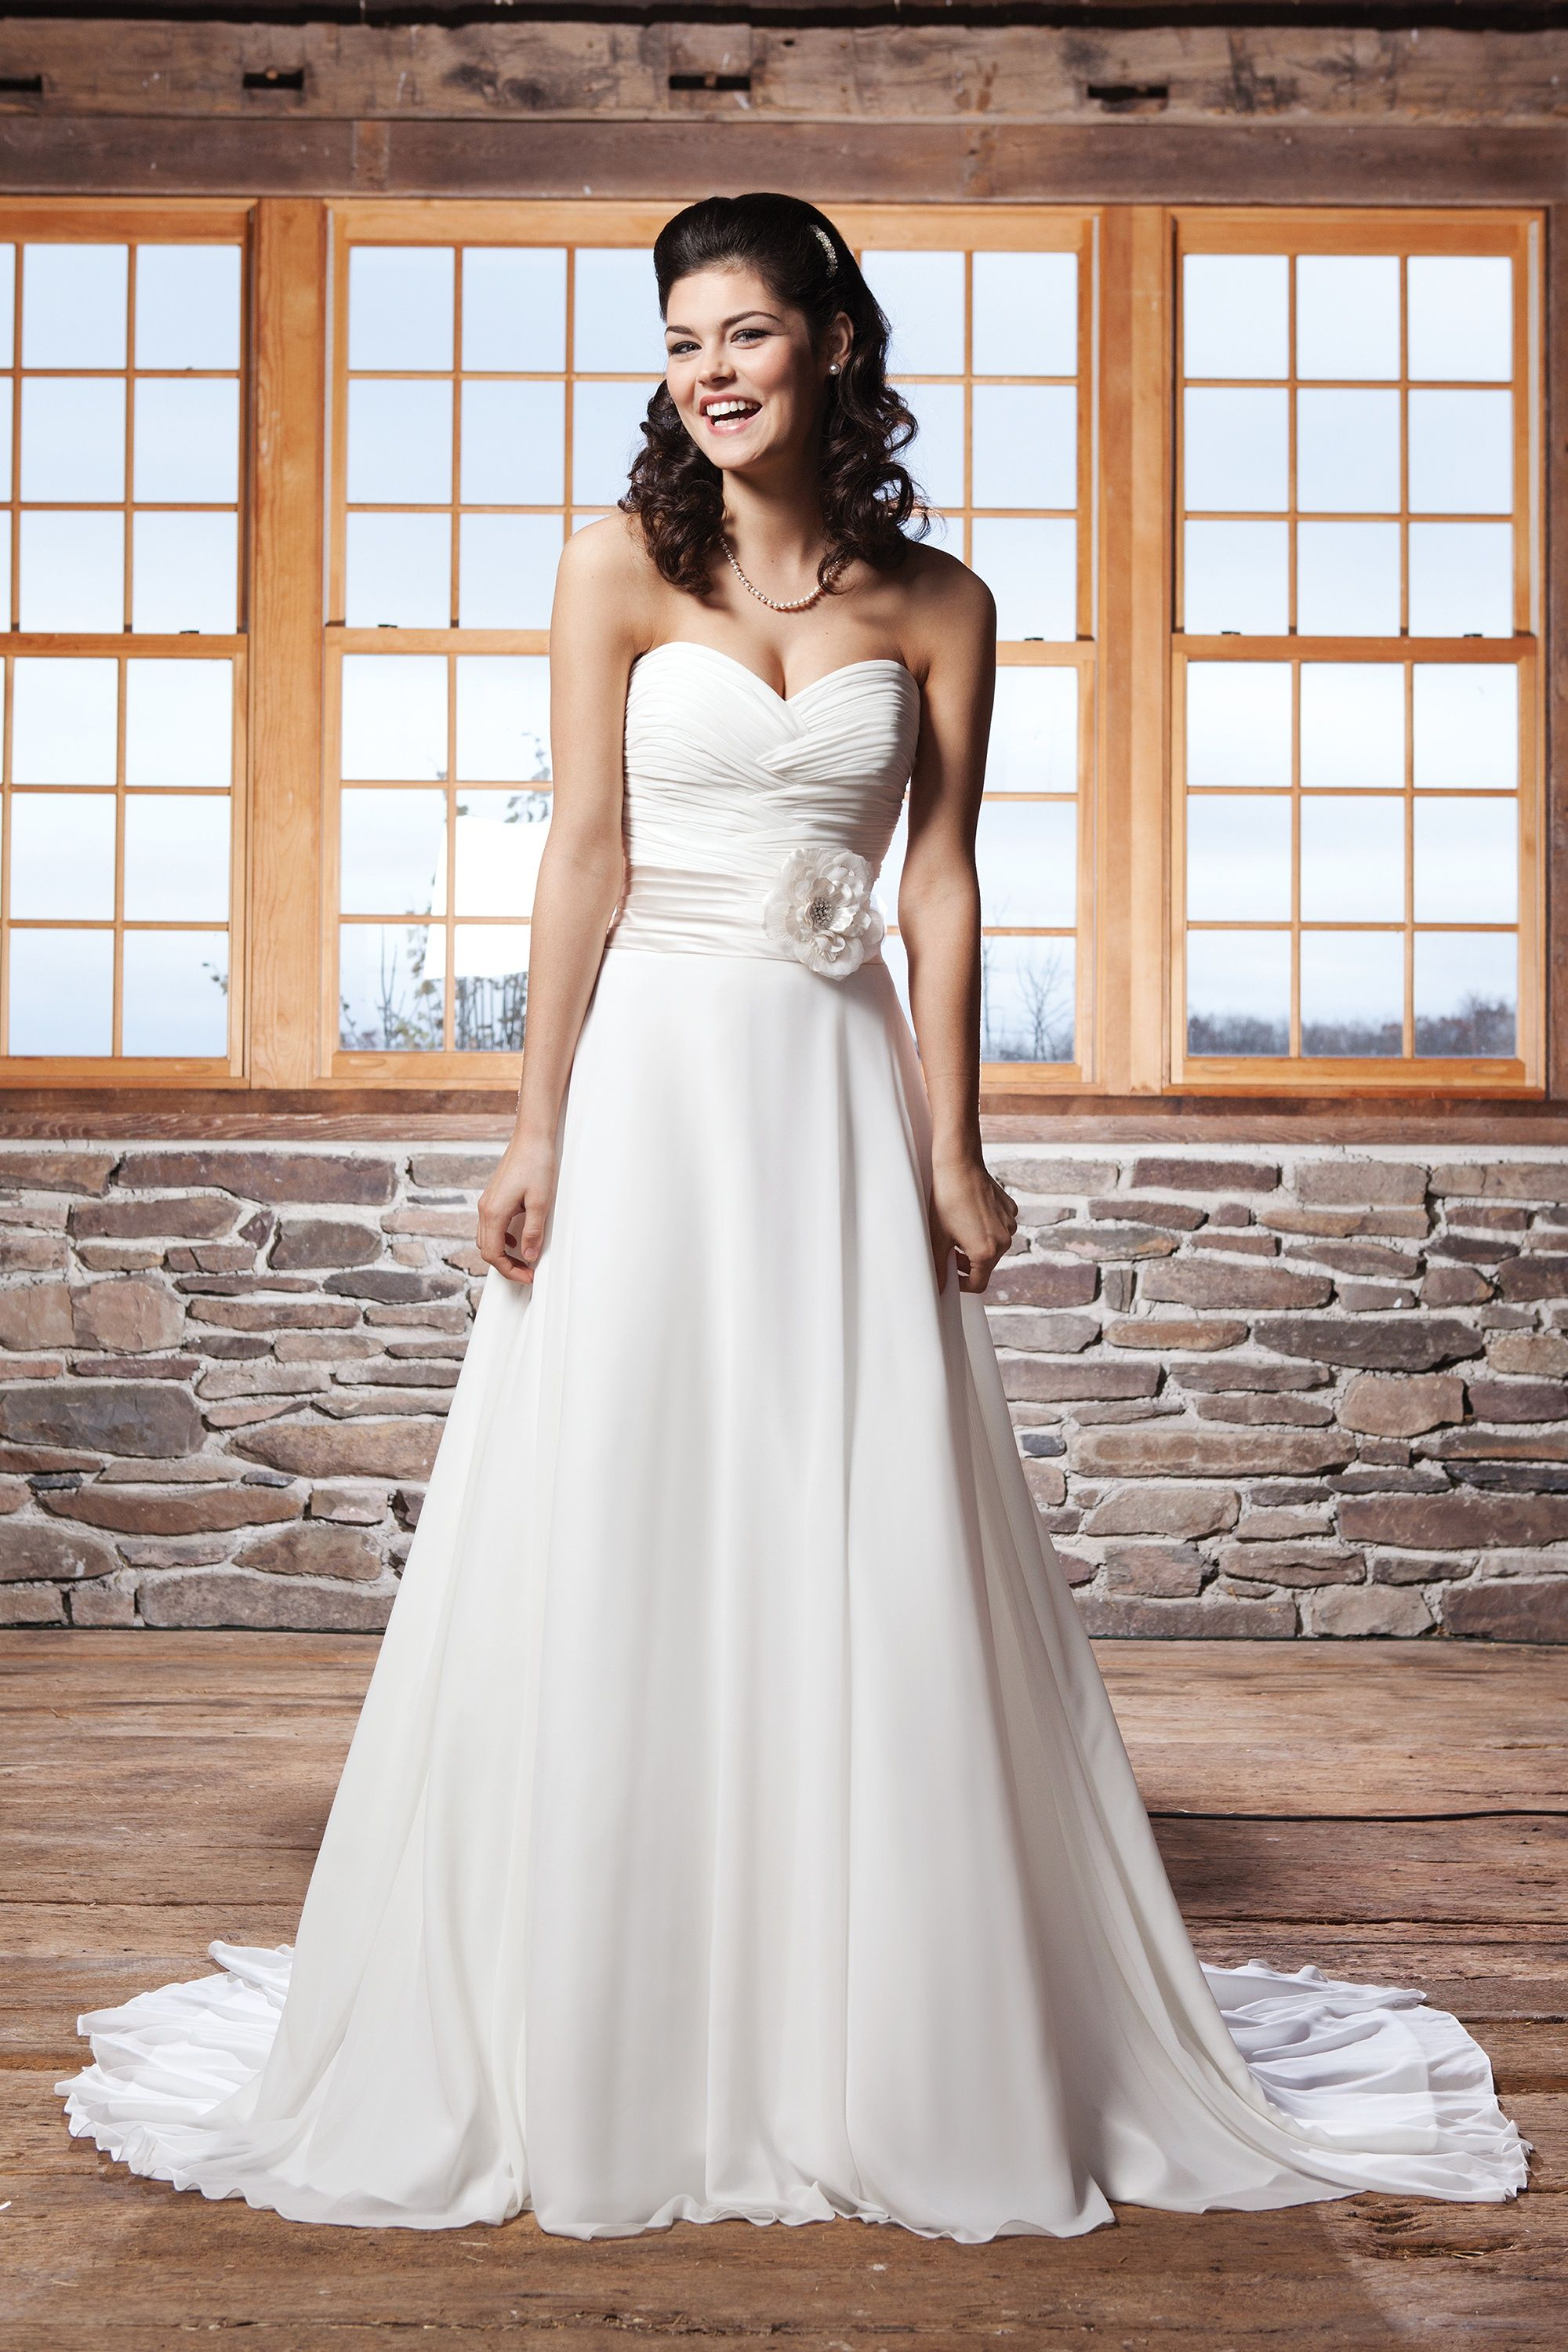 Pleated wedding dress  Pleated Cummerbund ALine Gown  One Sweet Day   Pinterest